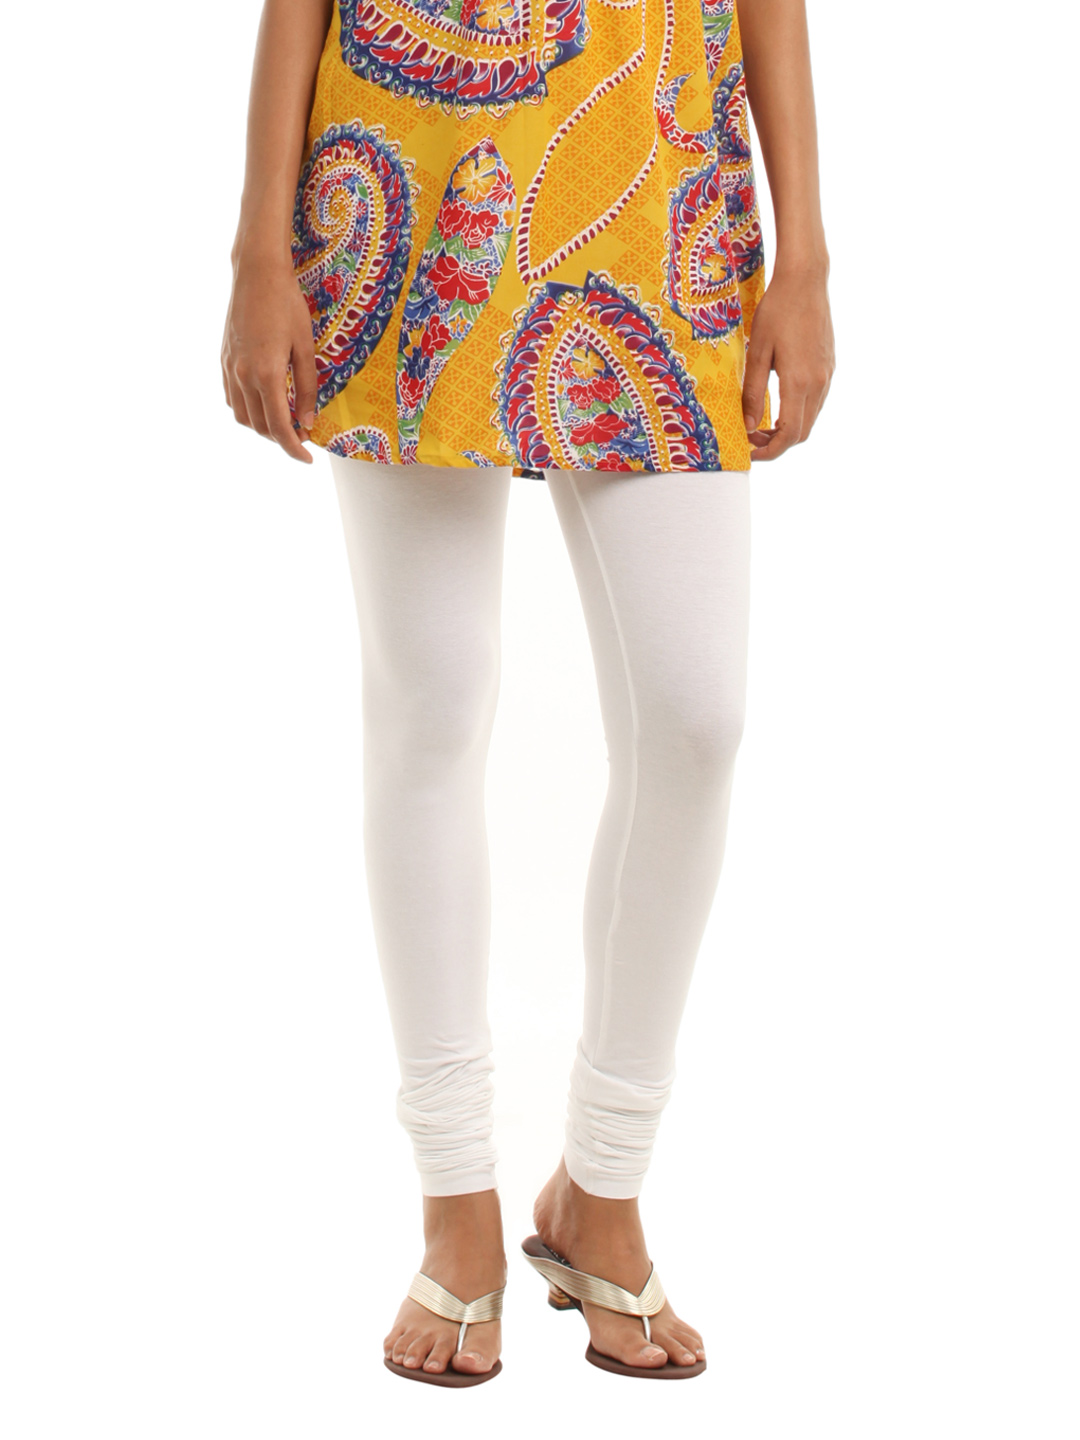 Vishudh White Leggings